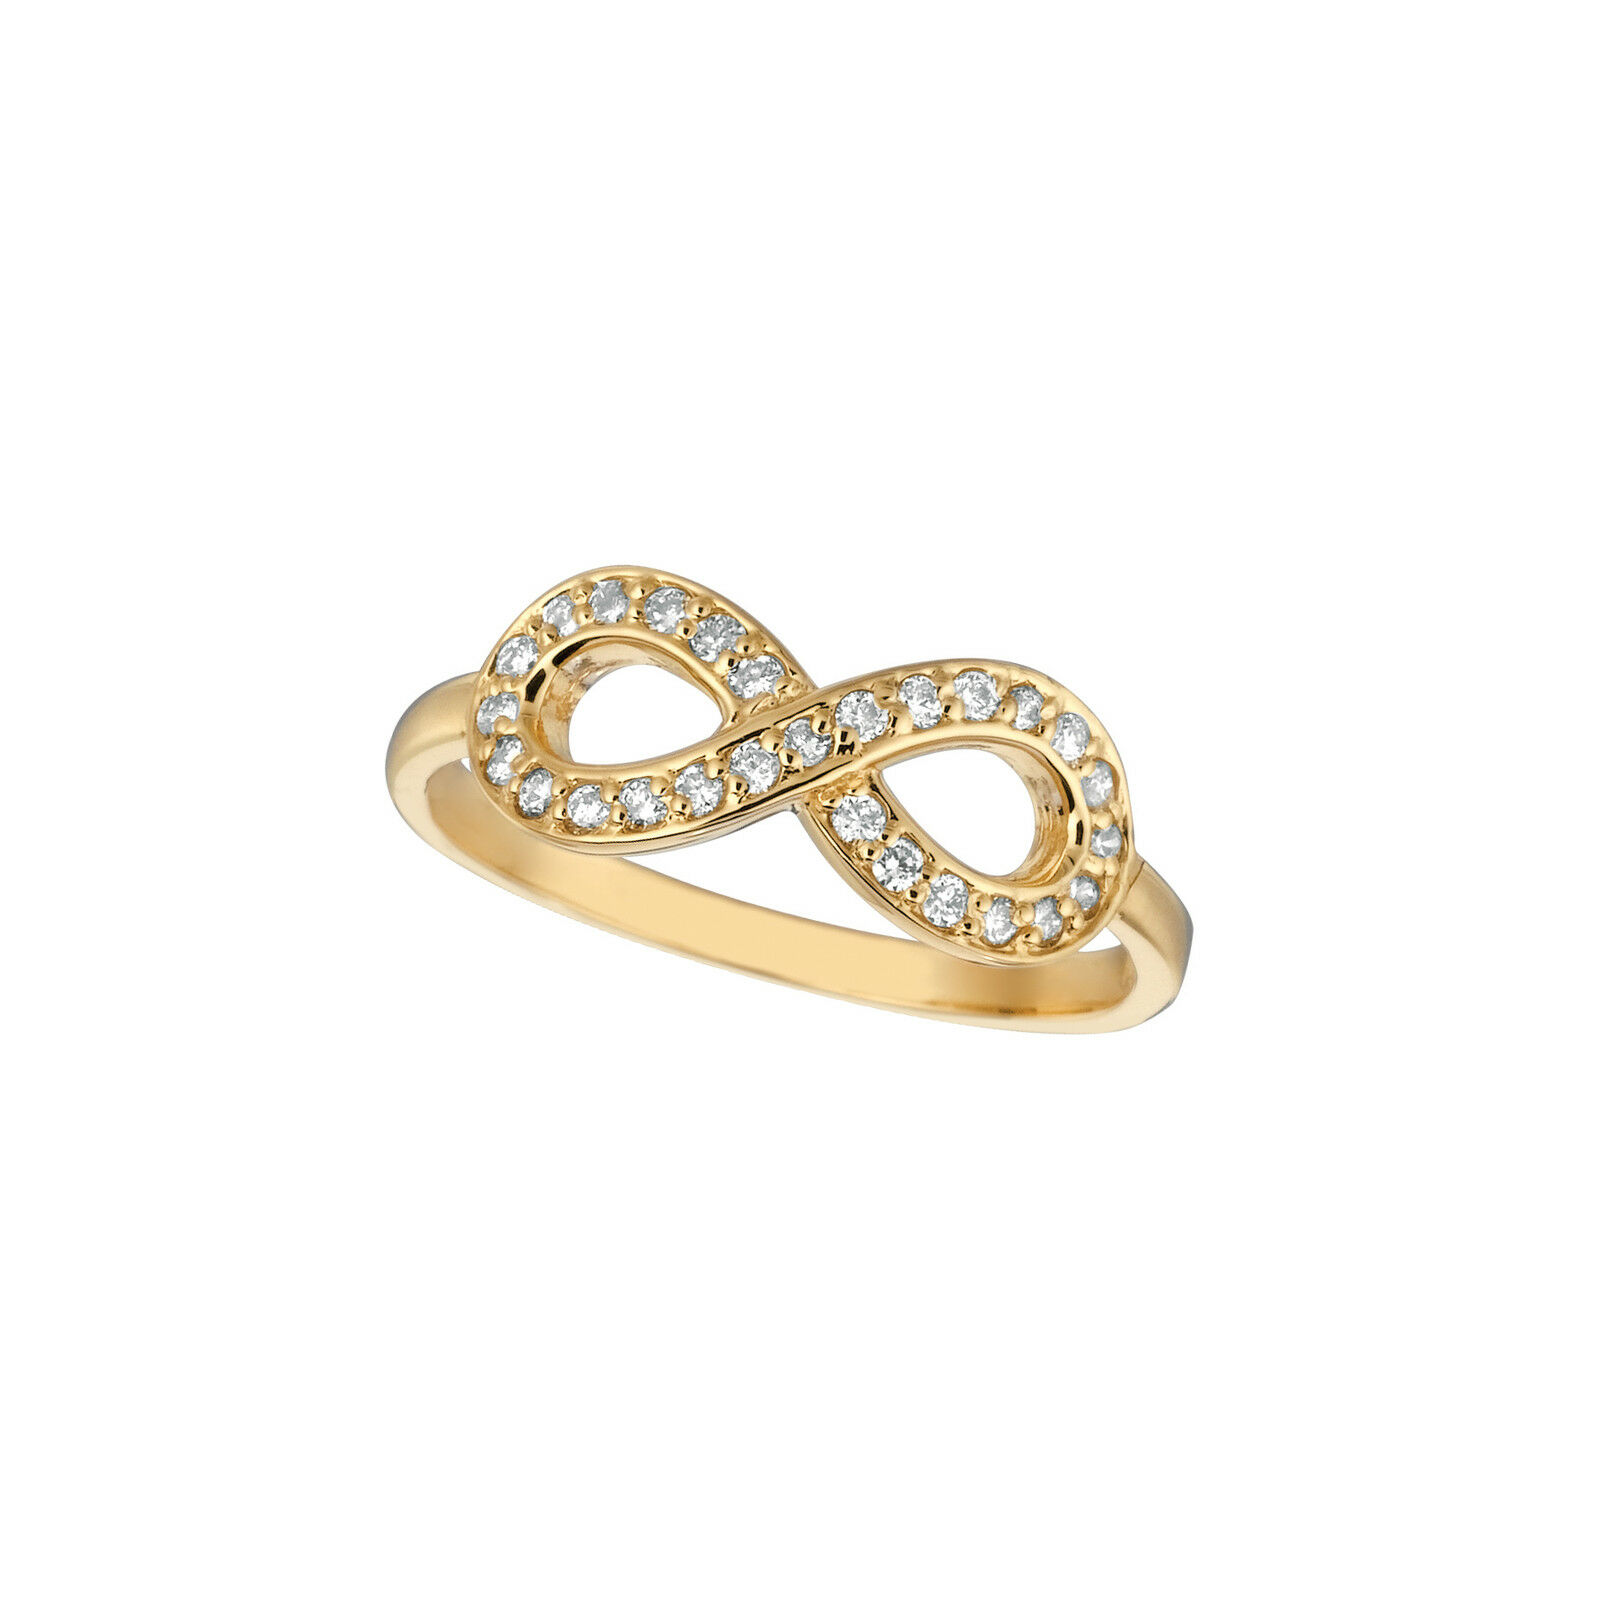 0.25 CT Diamond infinity ring Set In 14K Yellow gold IDJR6942.01YD